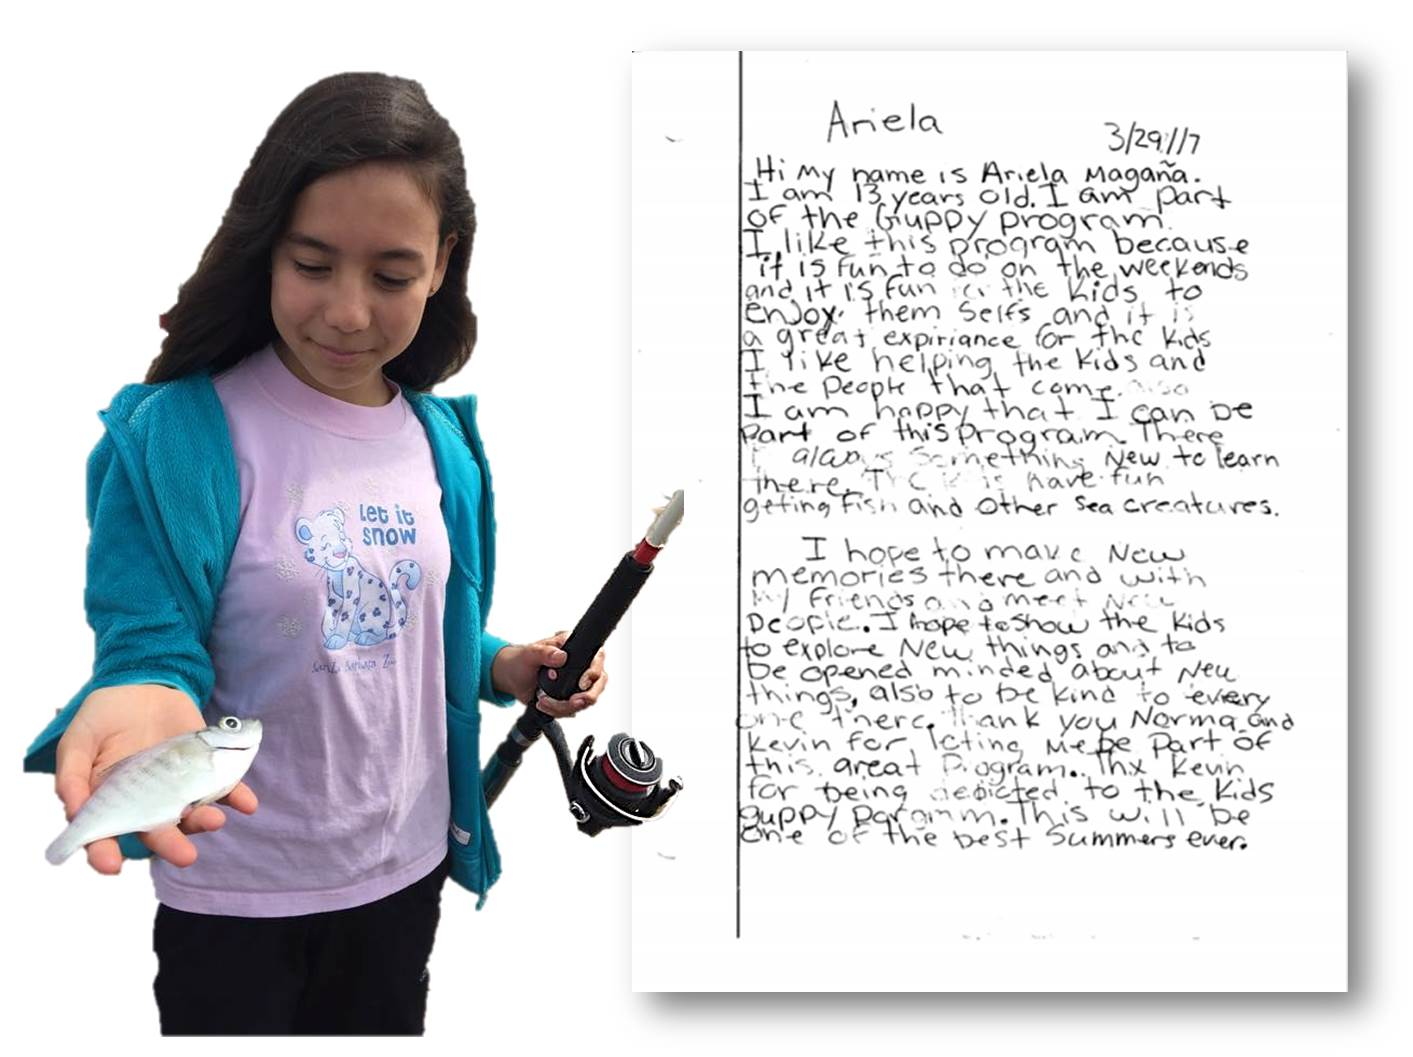 A Reel Guppy Outdoors participant holds her catch next to a thank you letter